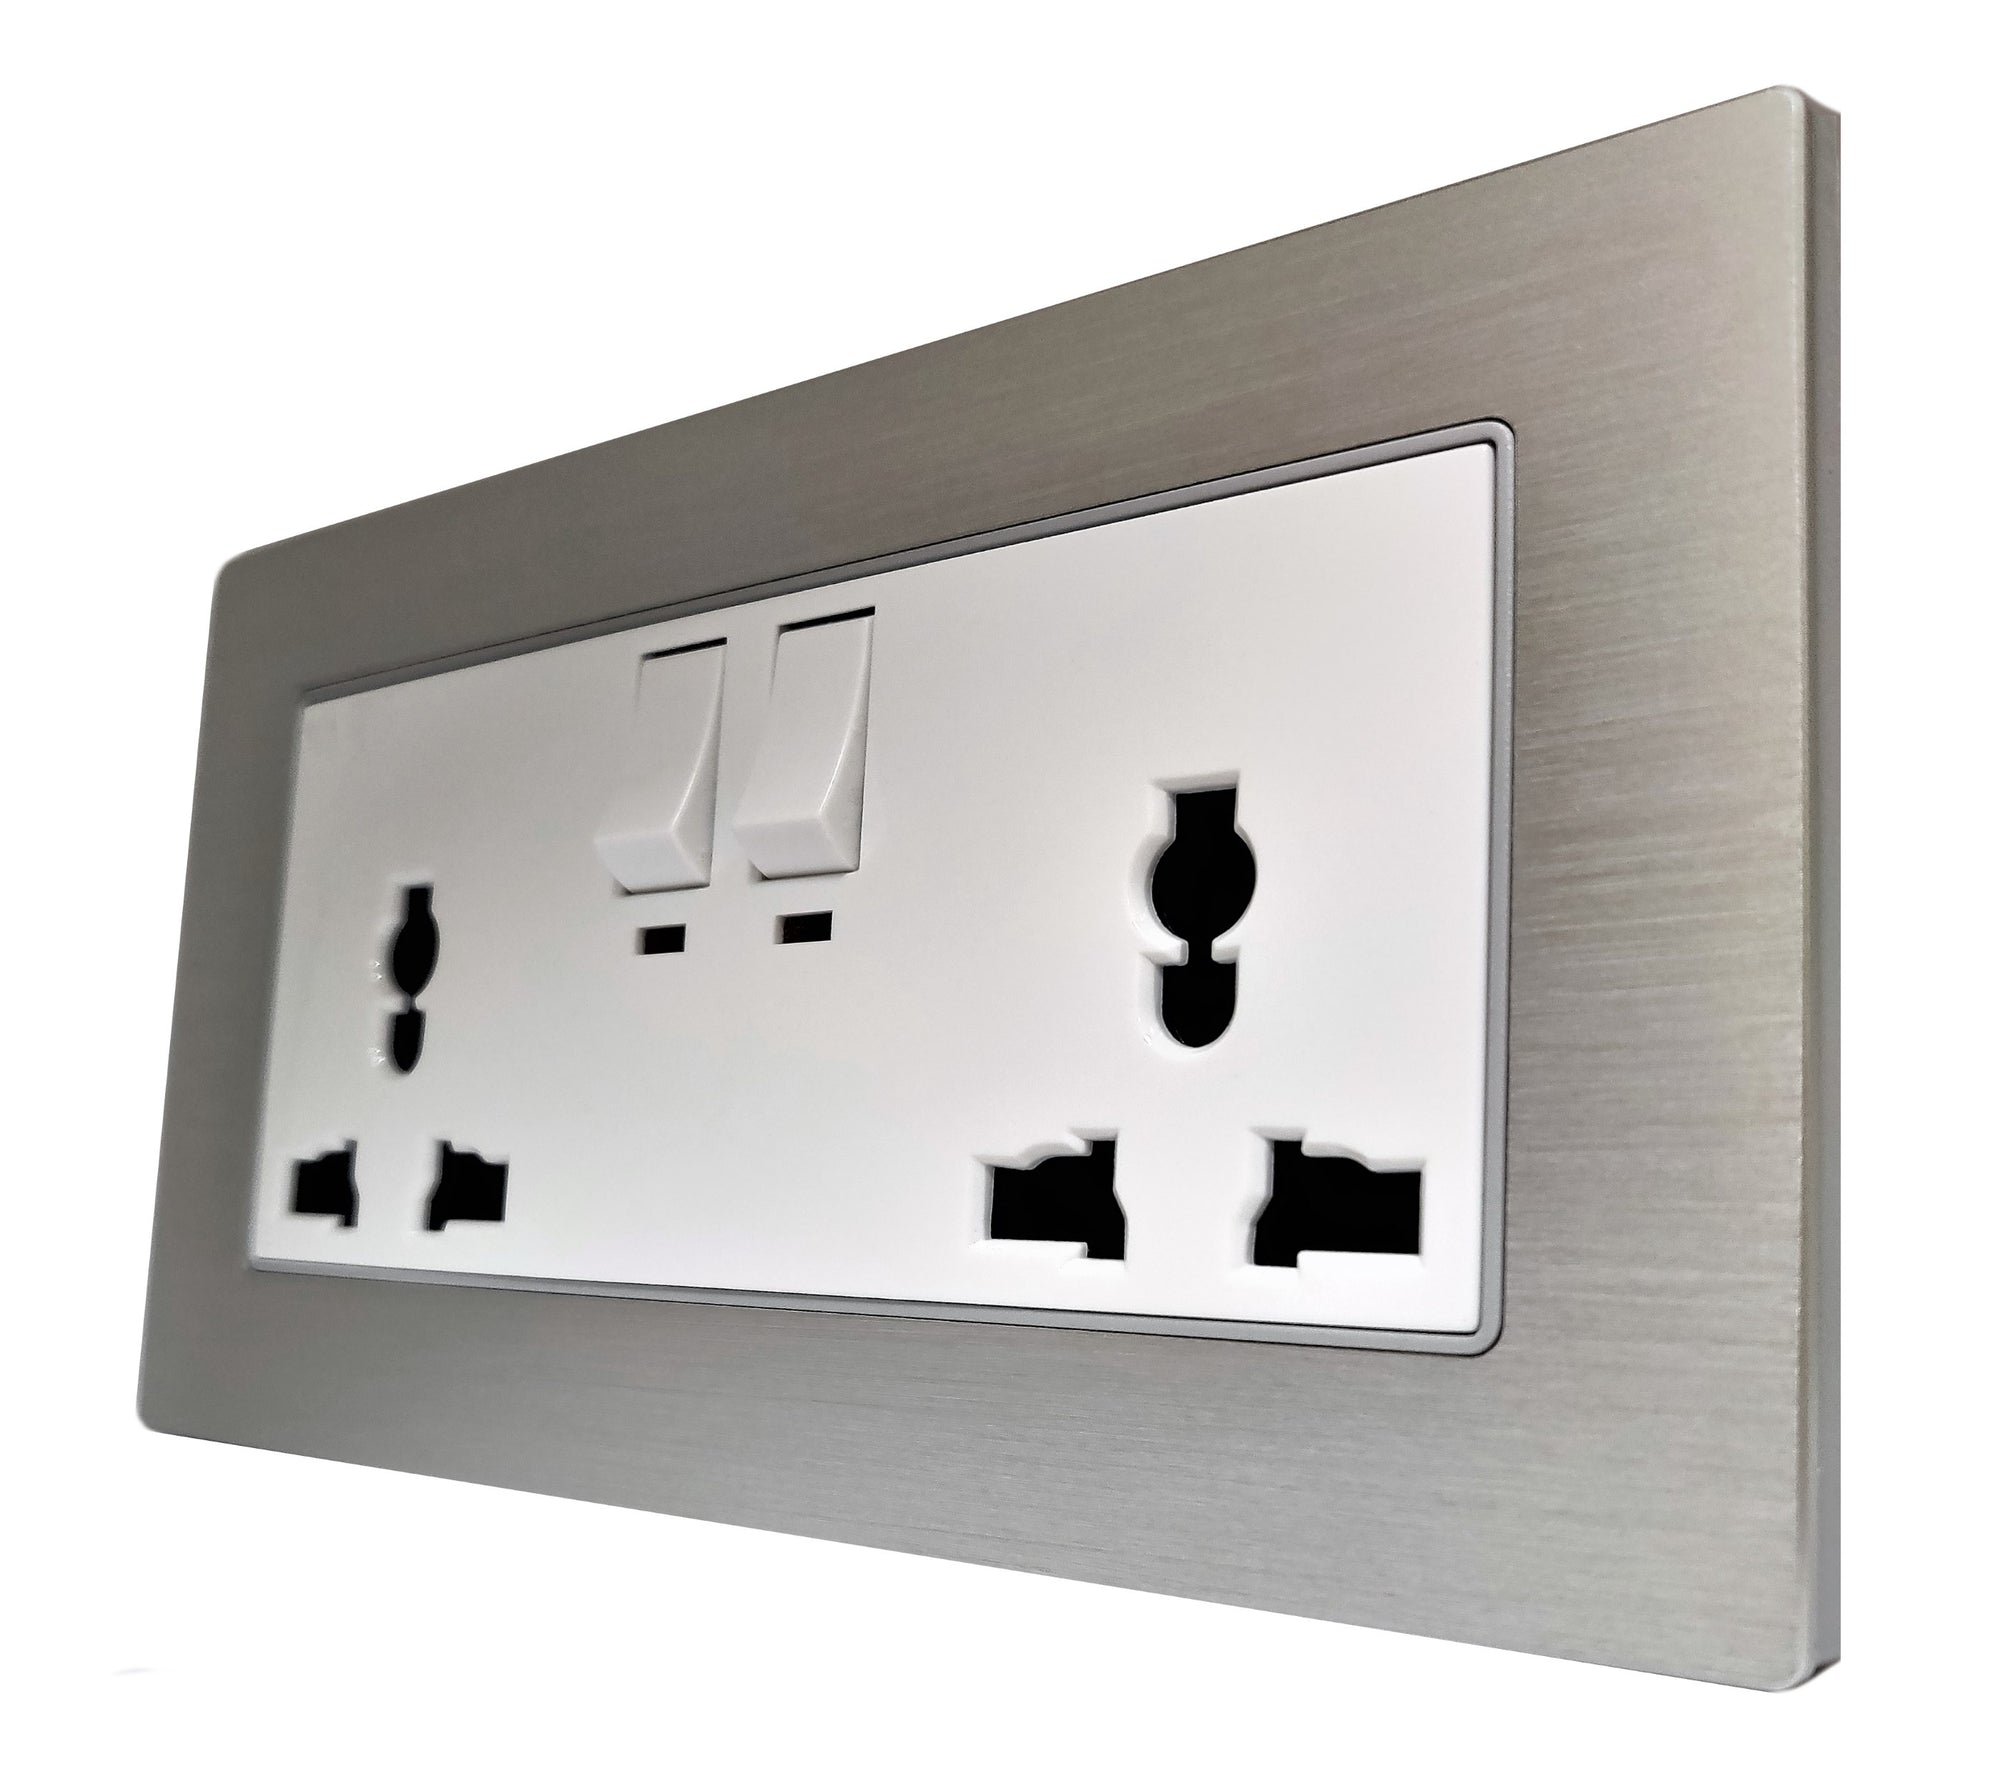 Double Universal Multi-Function AC Wall Power Socket in Silver Brushed Alum Frame & White Centre